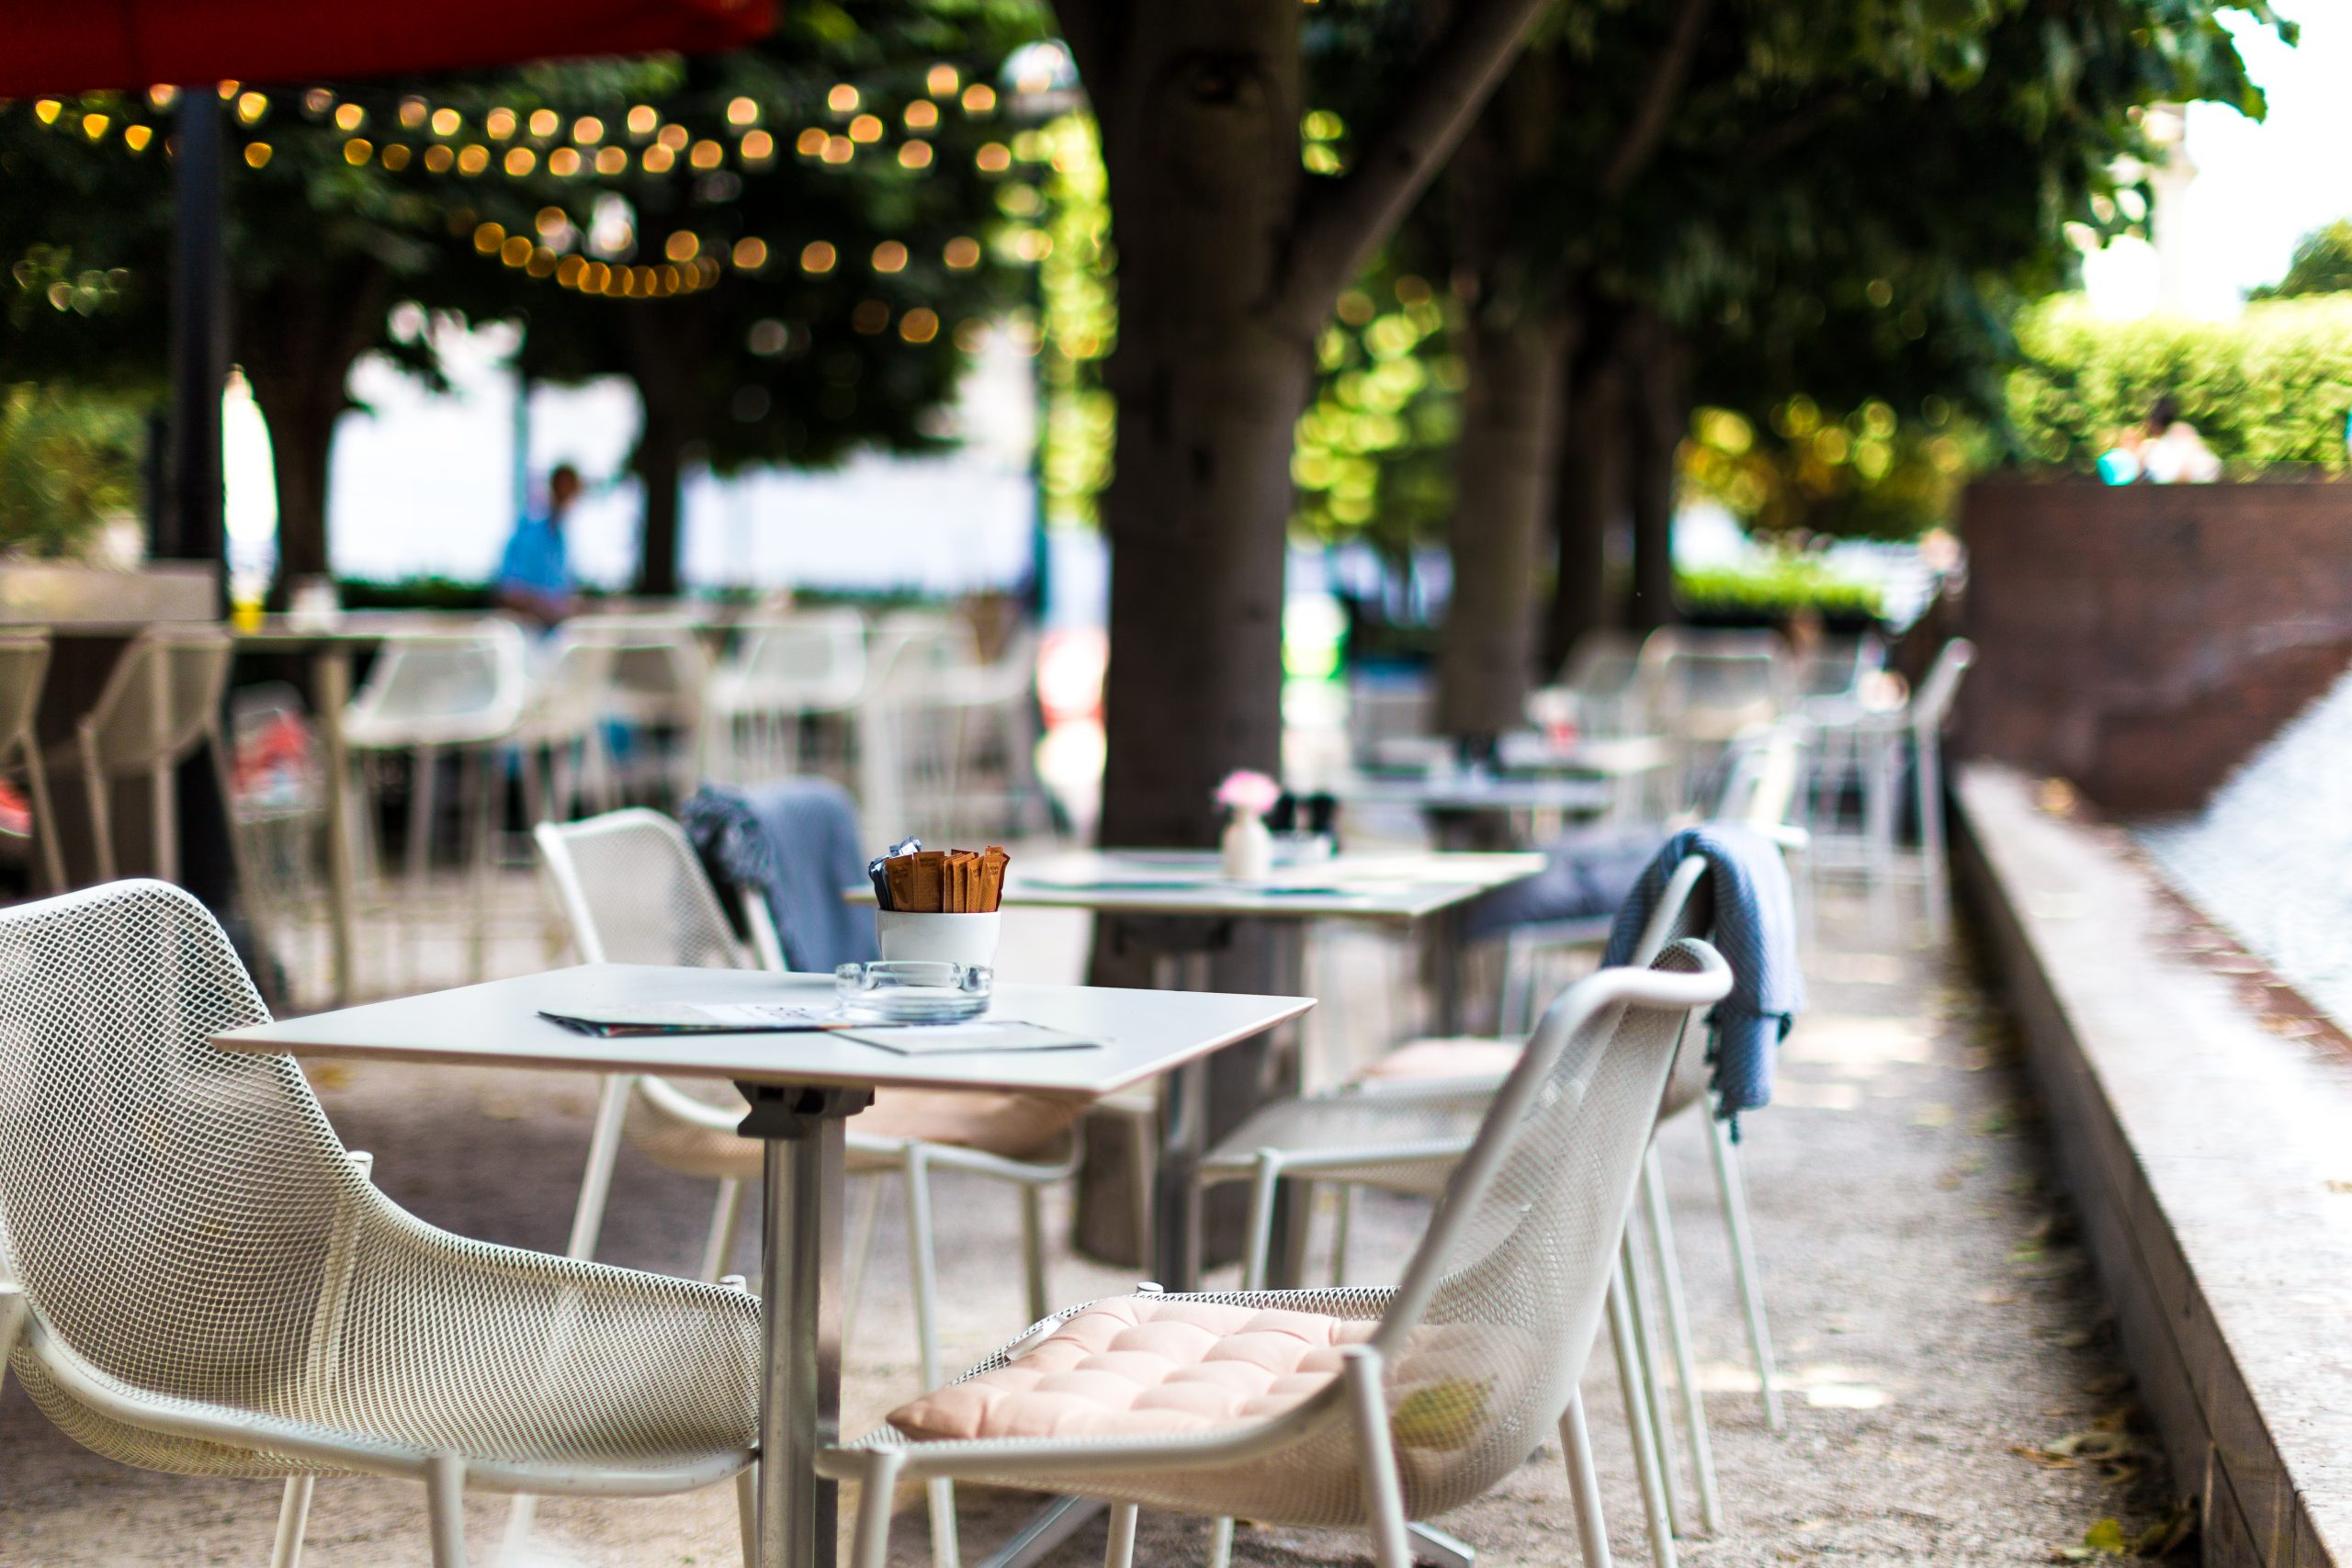 Color image depicting chairs and tables arranged at an outdoors cafe in central London, UK. It is a beautiful green space lined with trees and illuminated with fairy lights. There are bowls of sugar on the tables, but there are no people around. Room for copy space.